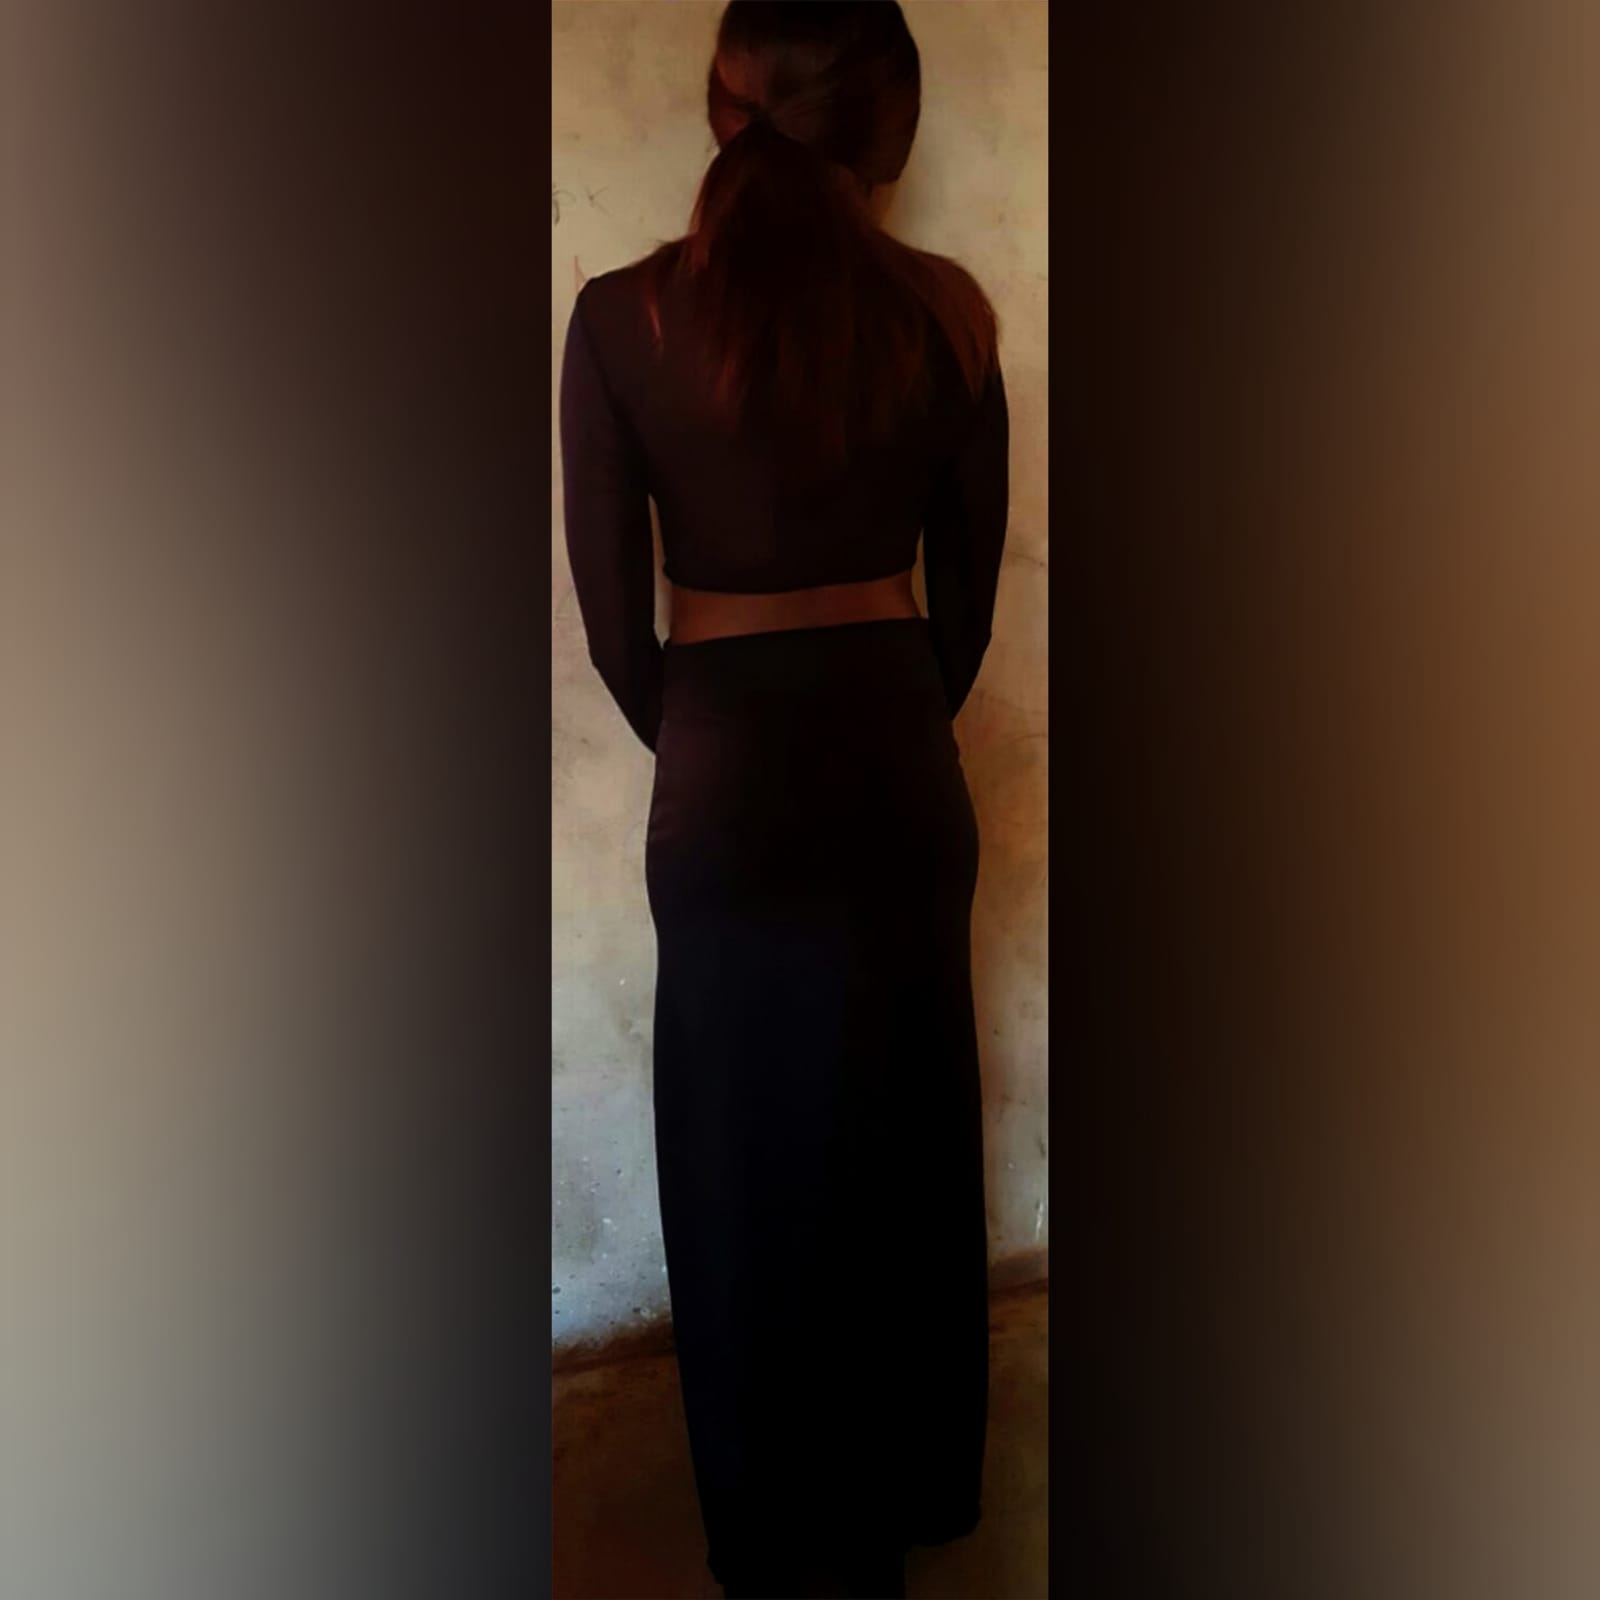 Black 2 piece smart casual dress 3 black 2 piece smart casual dress, with a crop top with long mesh sleeves, with a pencil long skirt with a slit